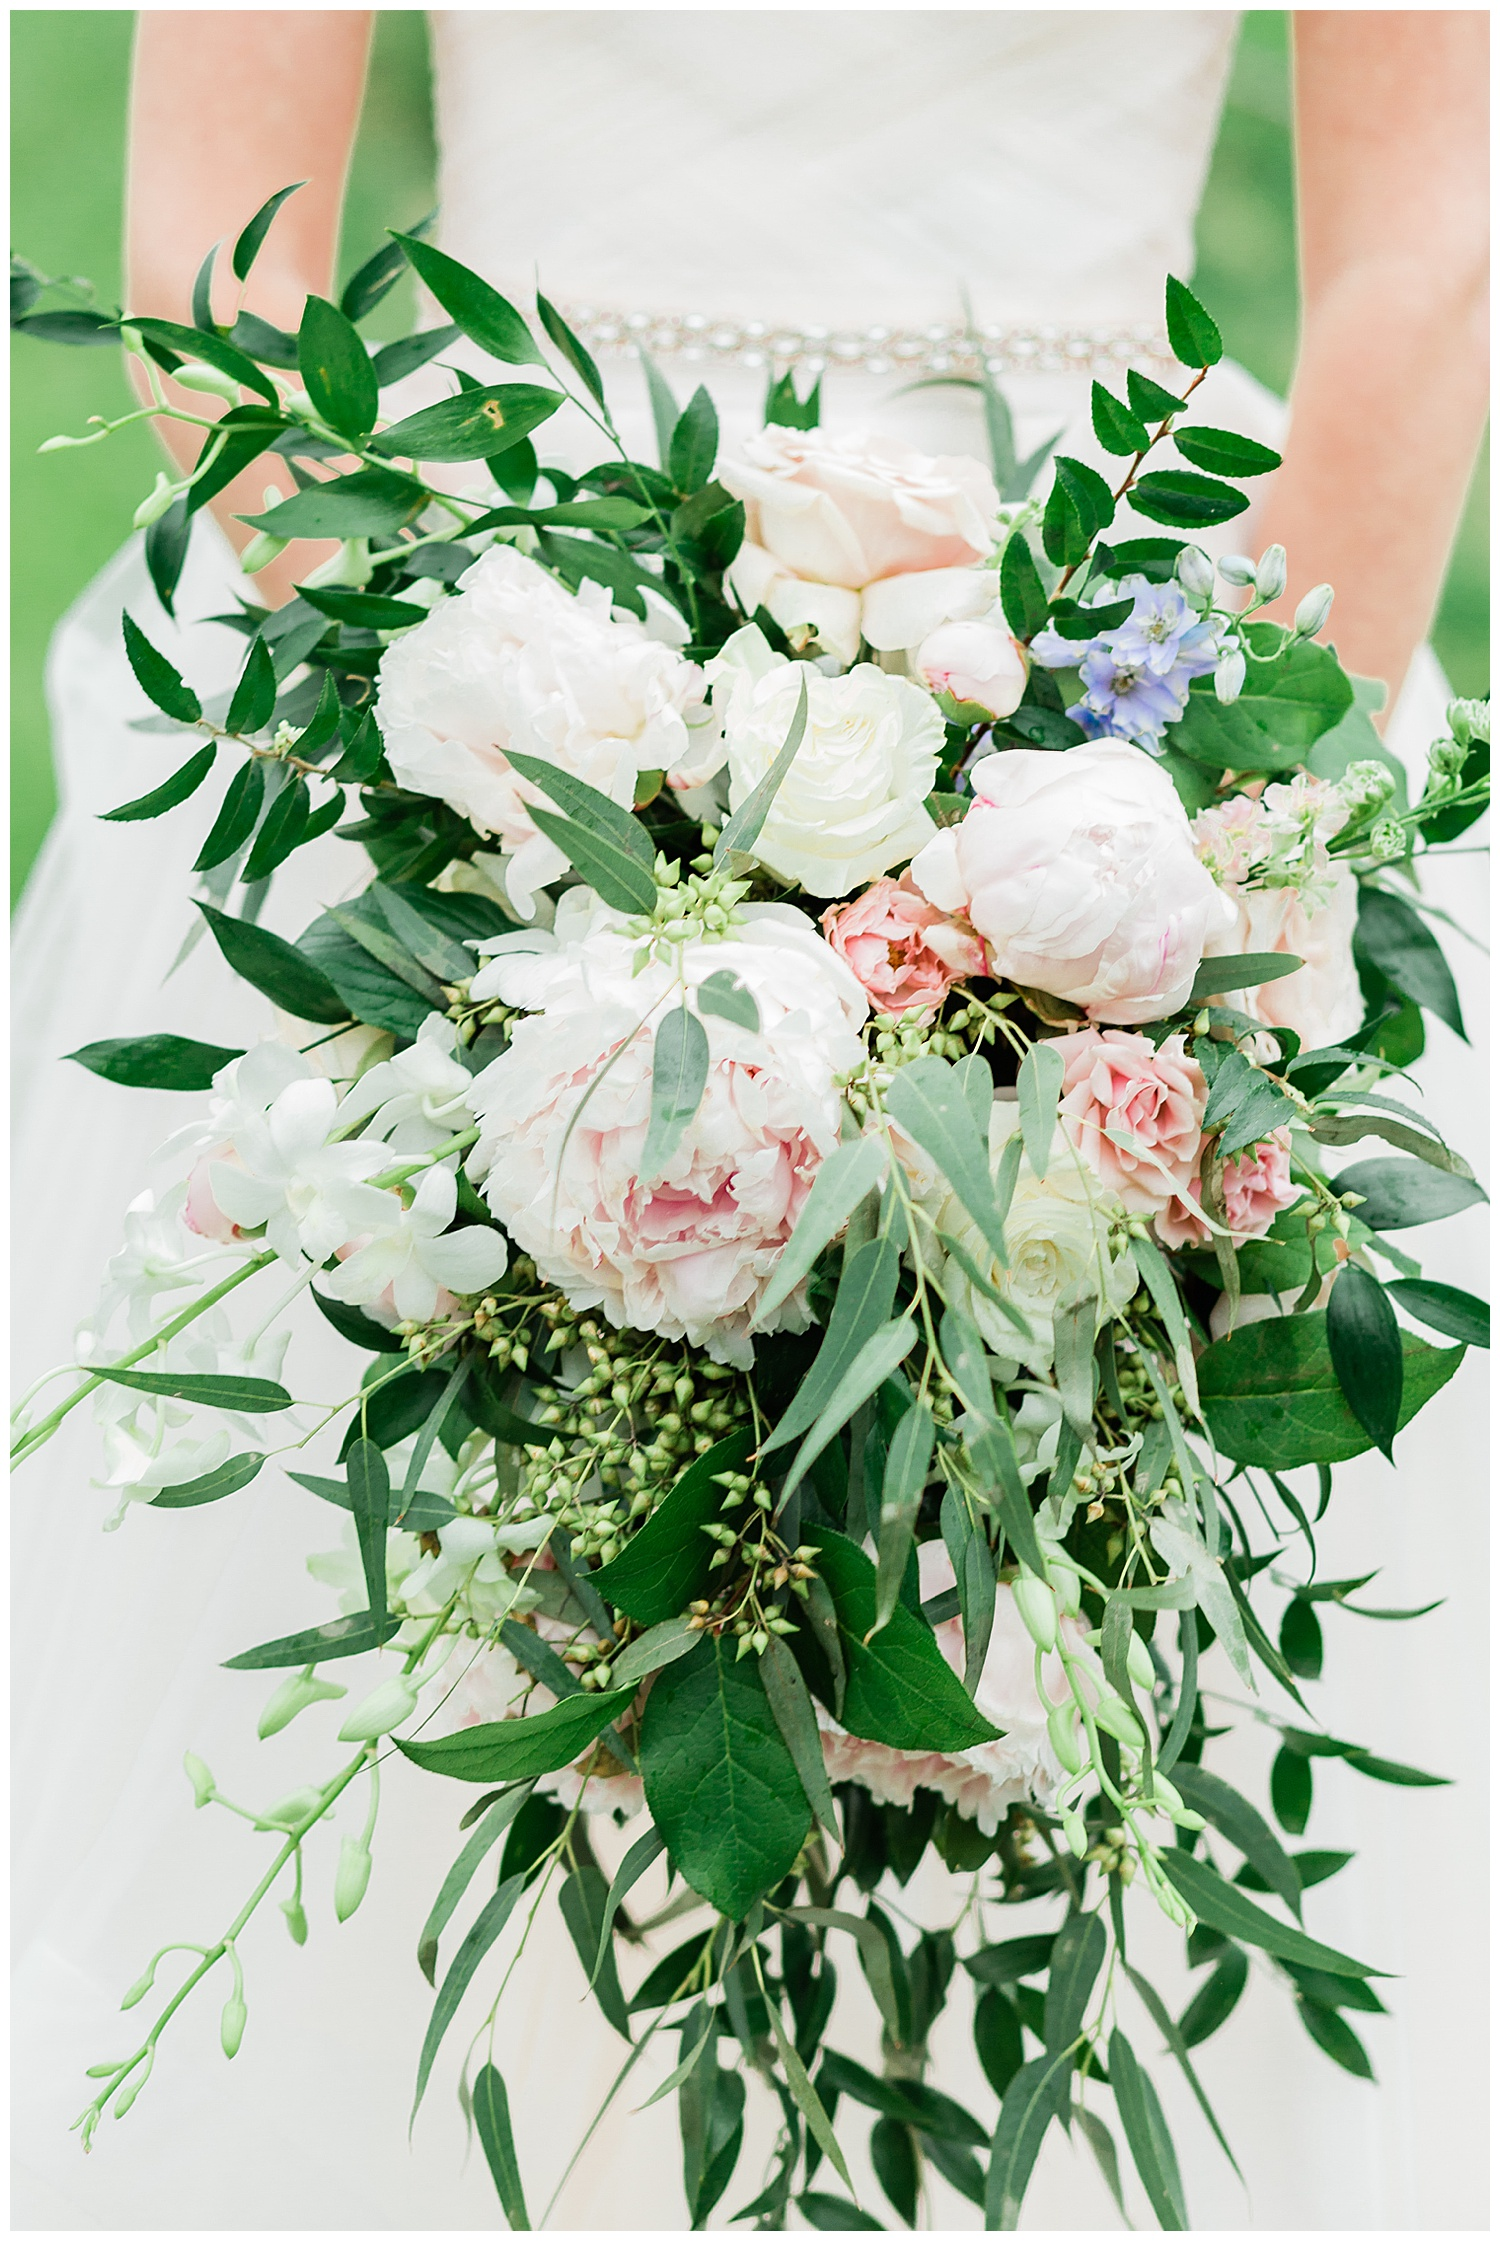 Beautiful bridal bouquet with pink peonies and white roses